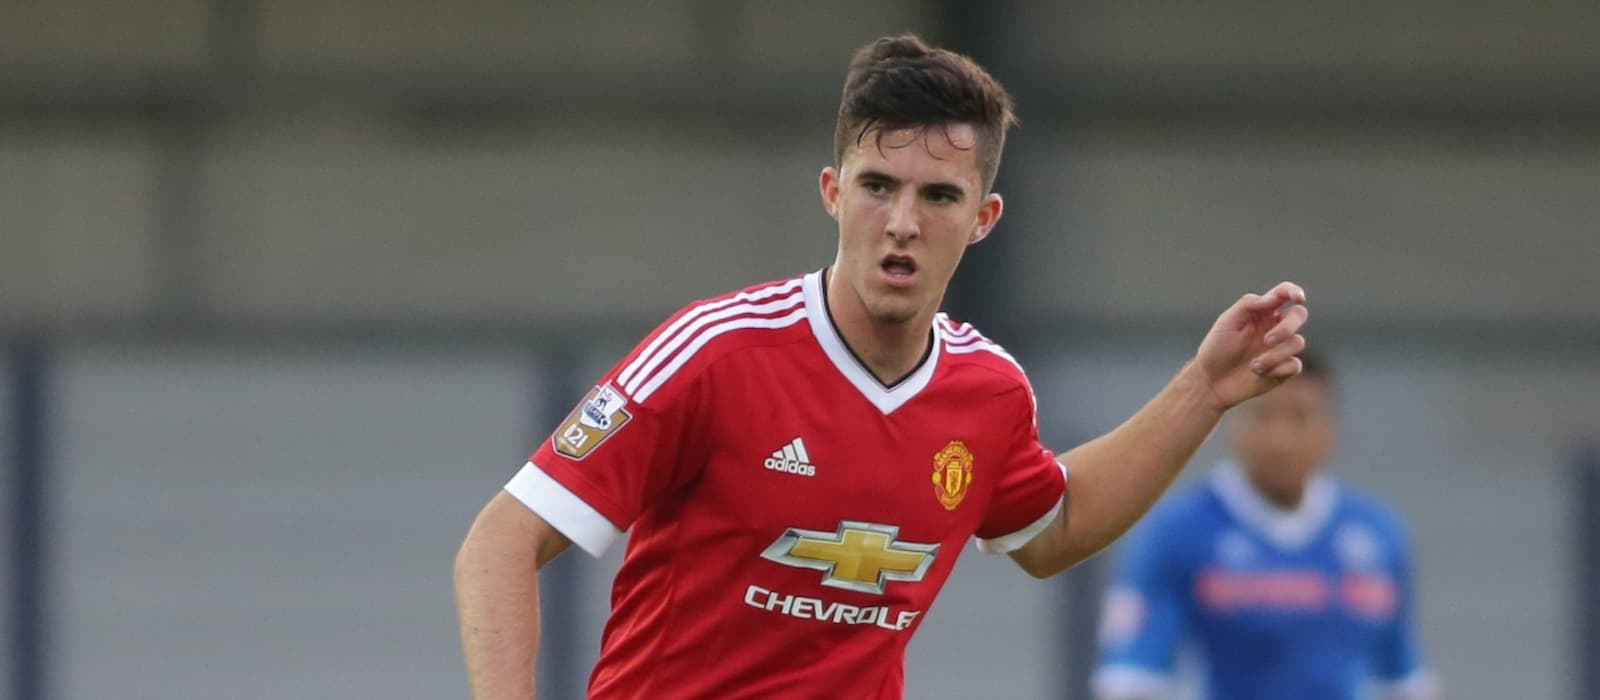 Sean Goss set to join QPR for £800,000 after rejecting new Manchester United contract